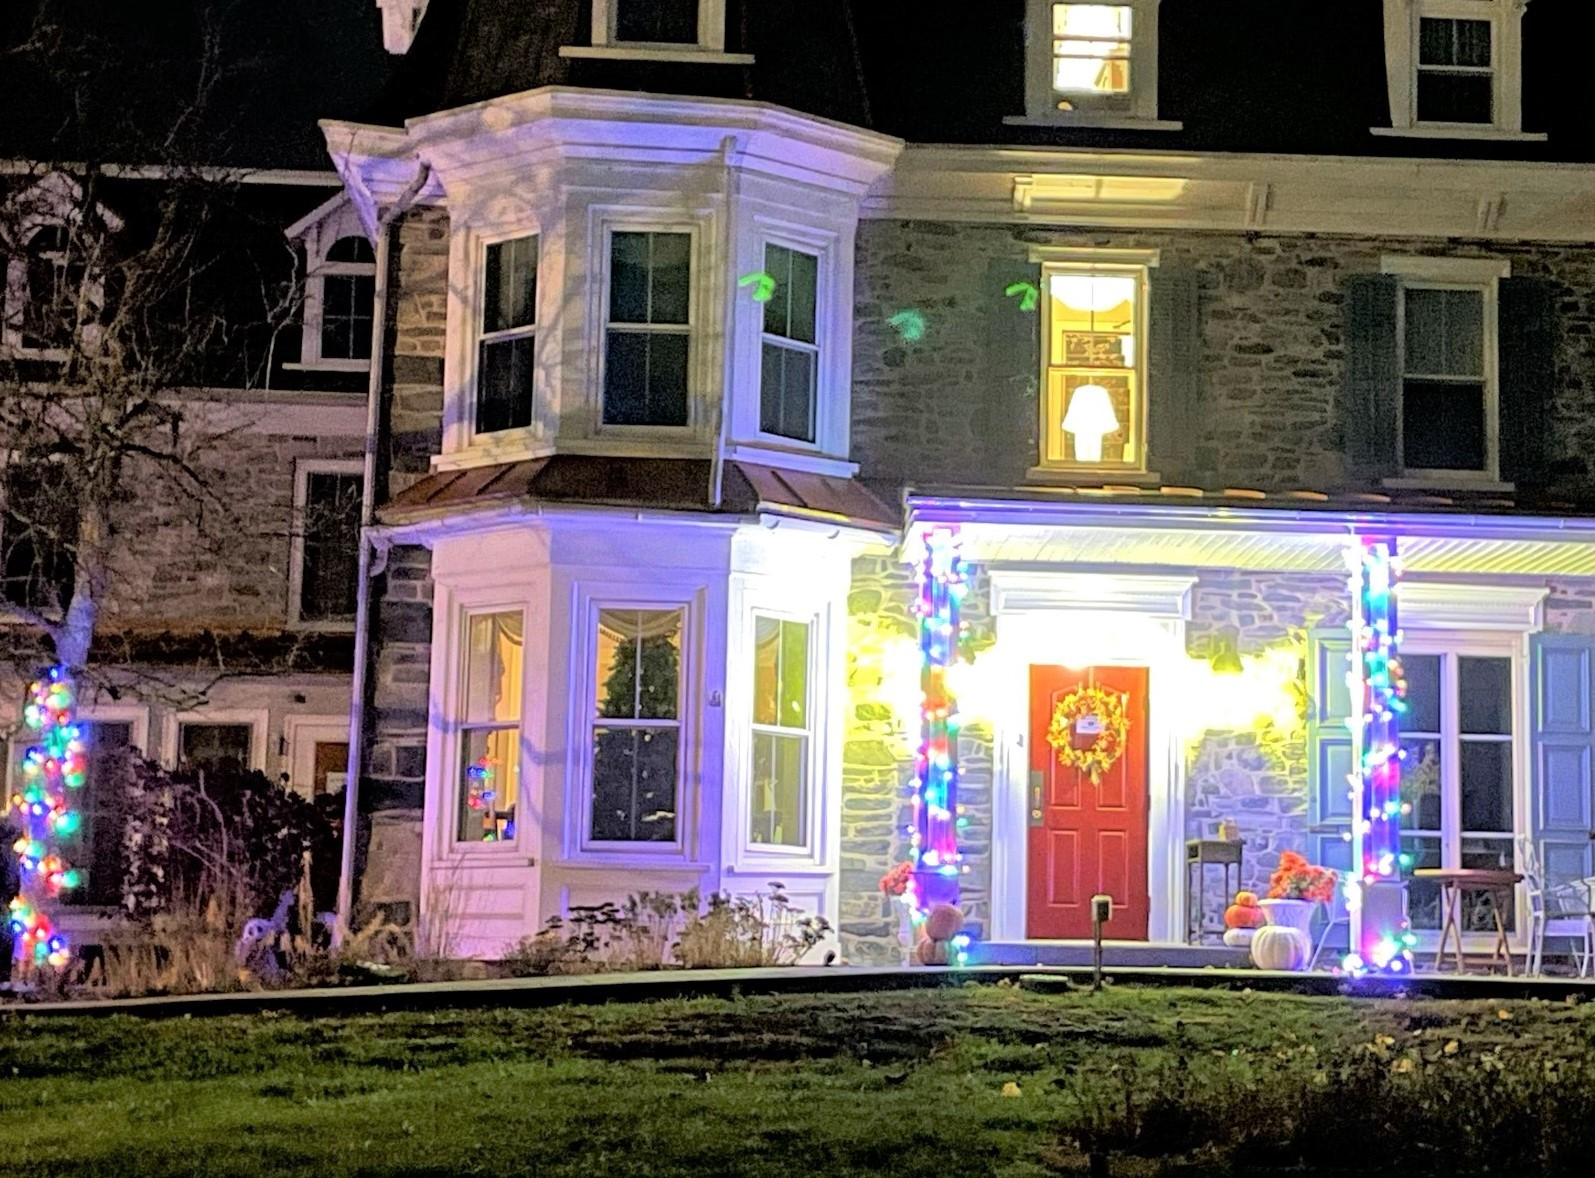 Front of stone manor at night with holiday lights on columns and light shining on welcoming red front door